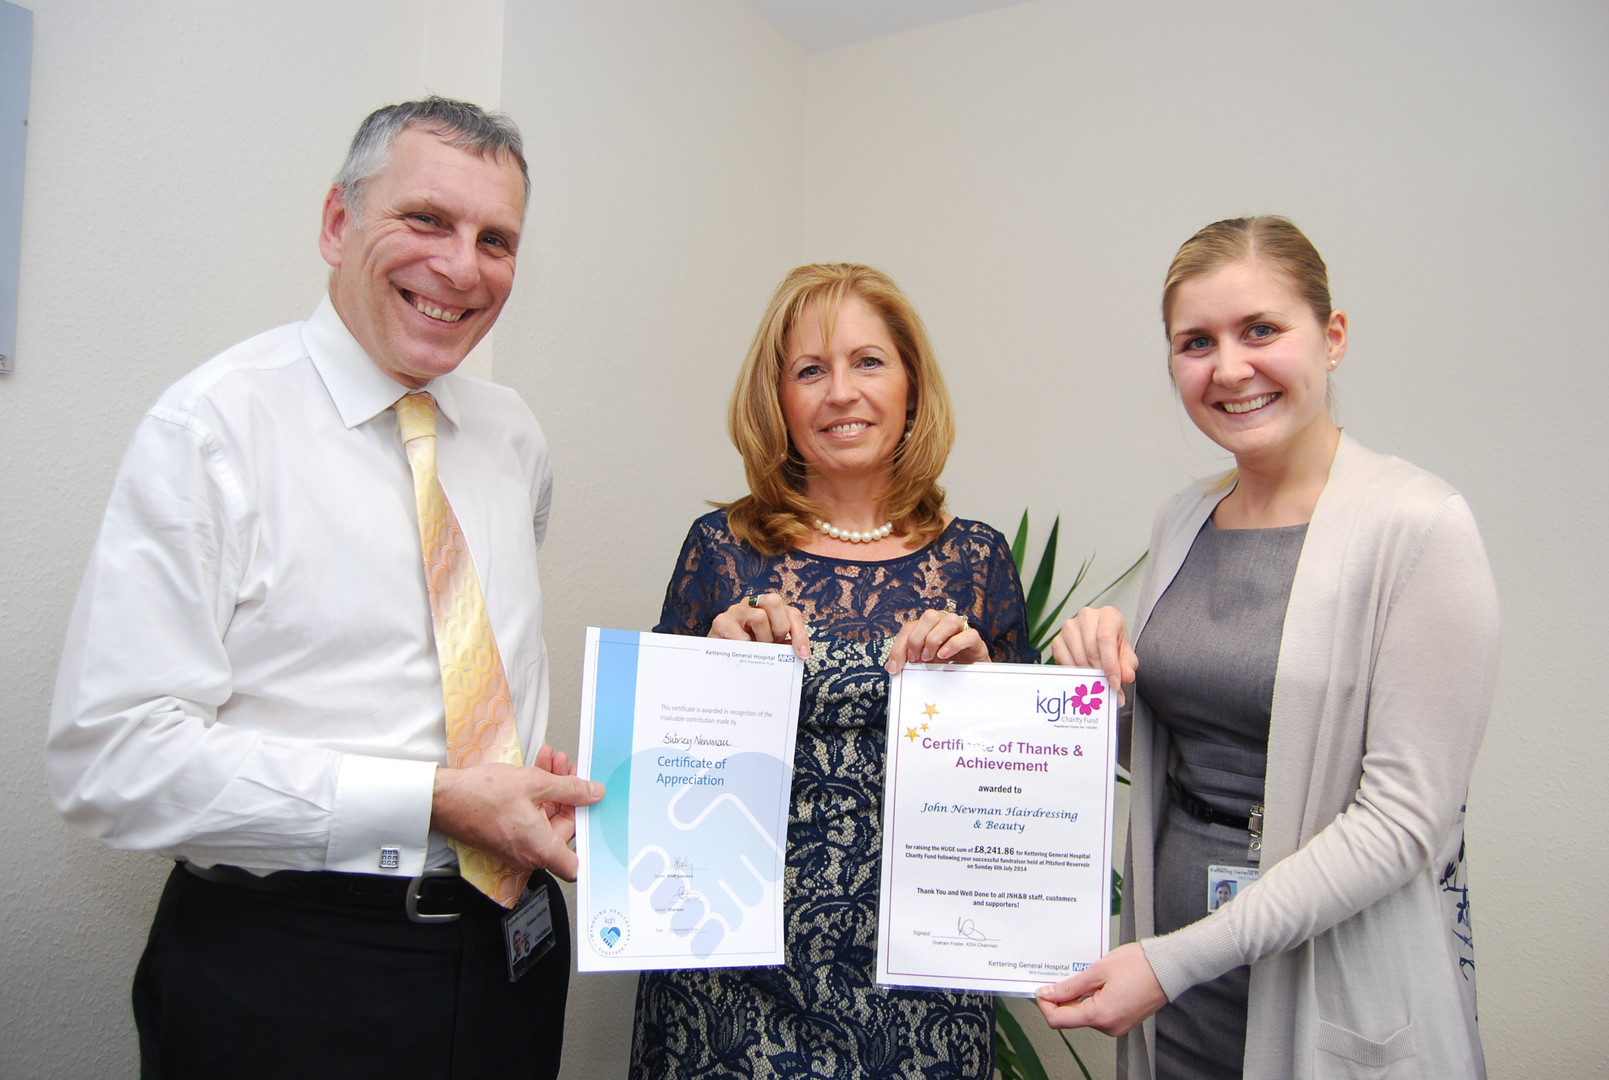 Shirley receiving a 'Certificate of Appreciation' from chairman of KGH, Graham Foster & 'Certificate of Thanks & Achievement' from Christina Kelly, fundraising officier at KGH. Shirley accepts these certifcates on behalf of everyone, especially the team at JNH&B.